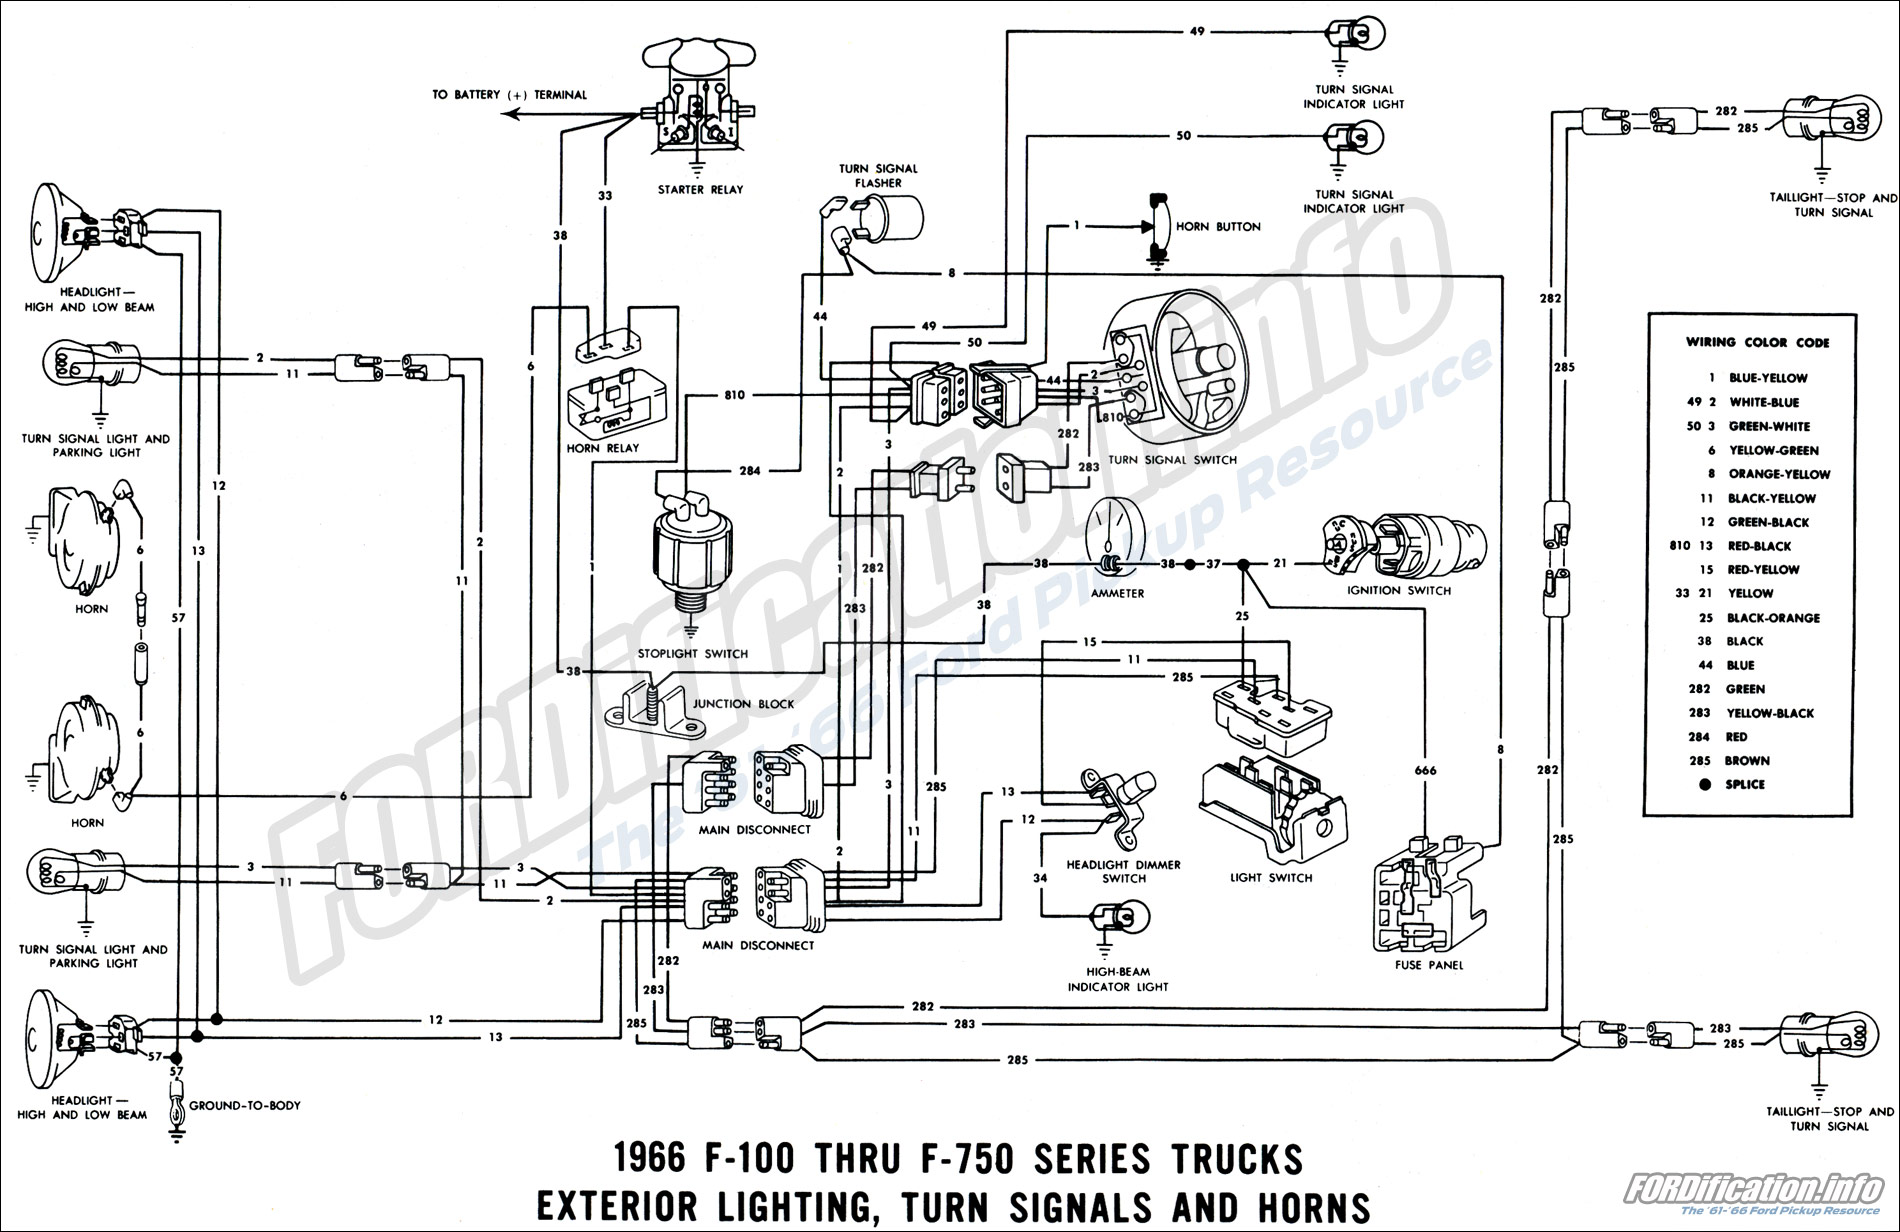 hx chiller wiring diagram